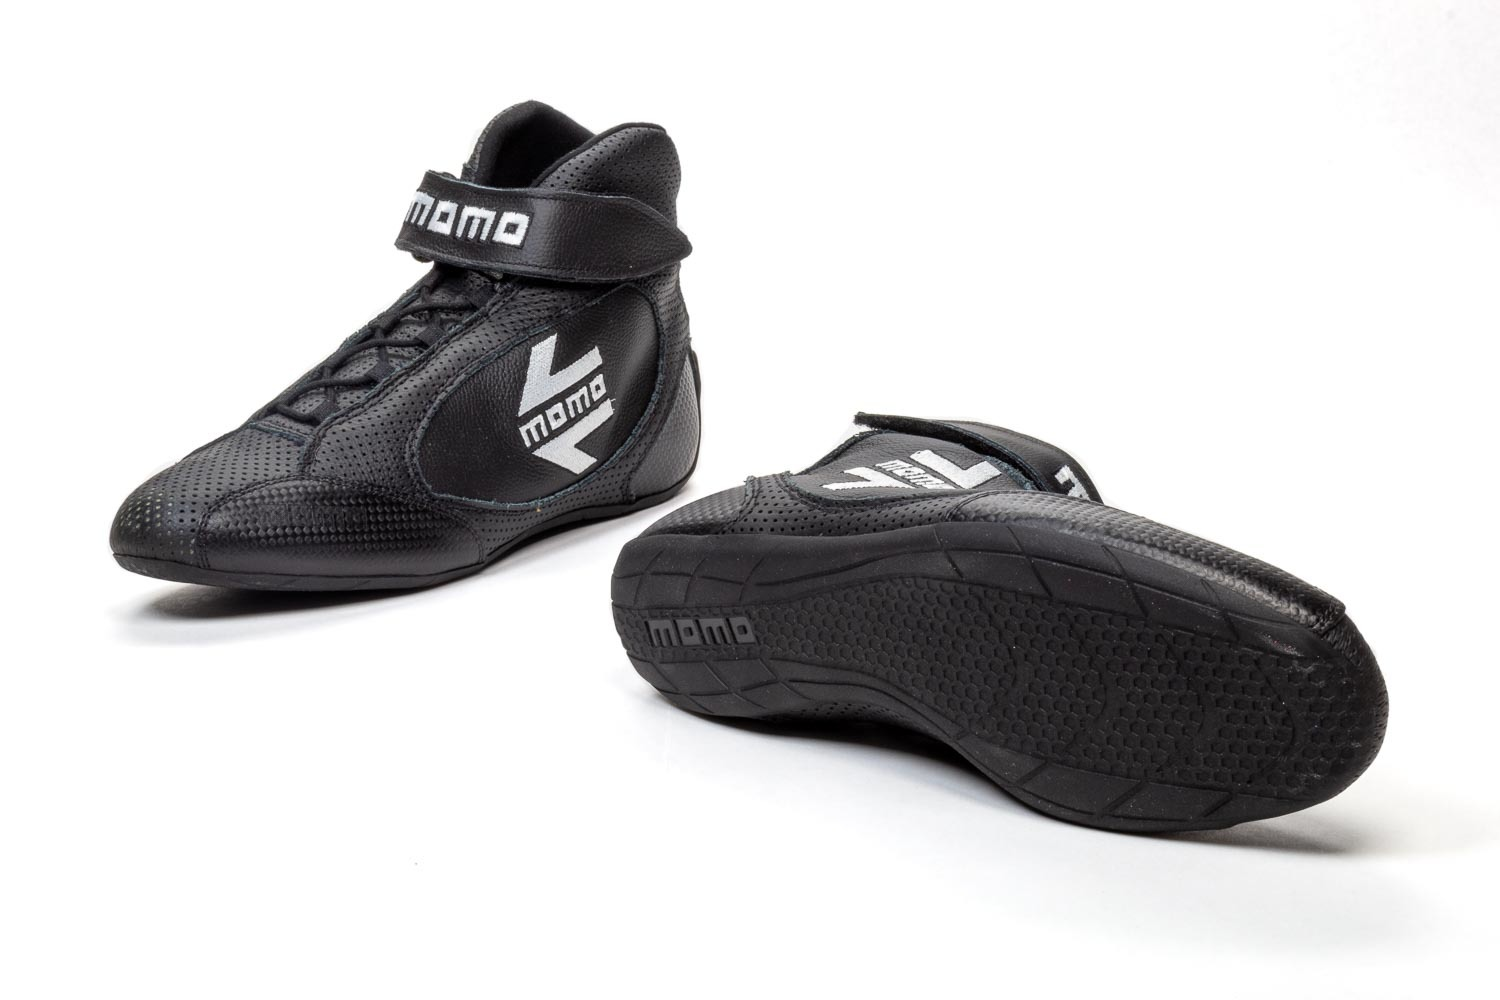 GT PRO Racing Shoes Discontinued 4/20